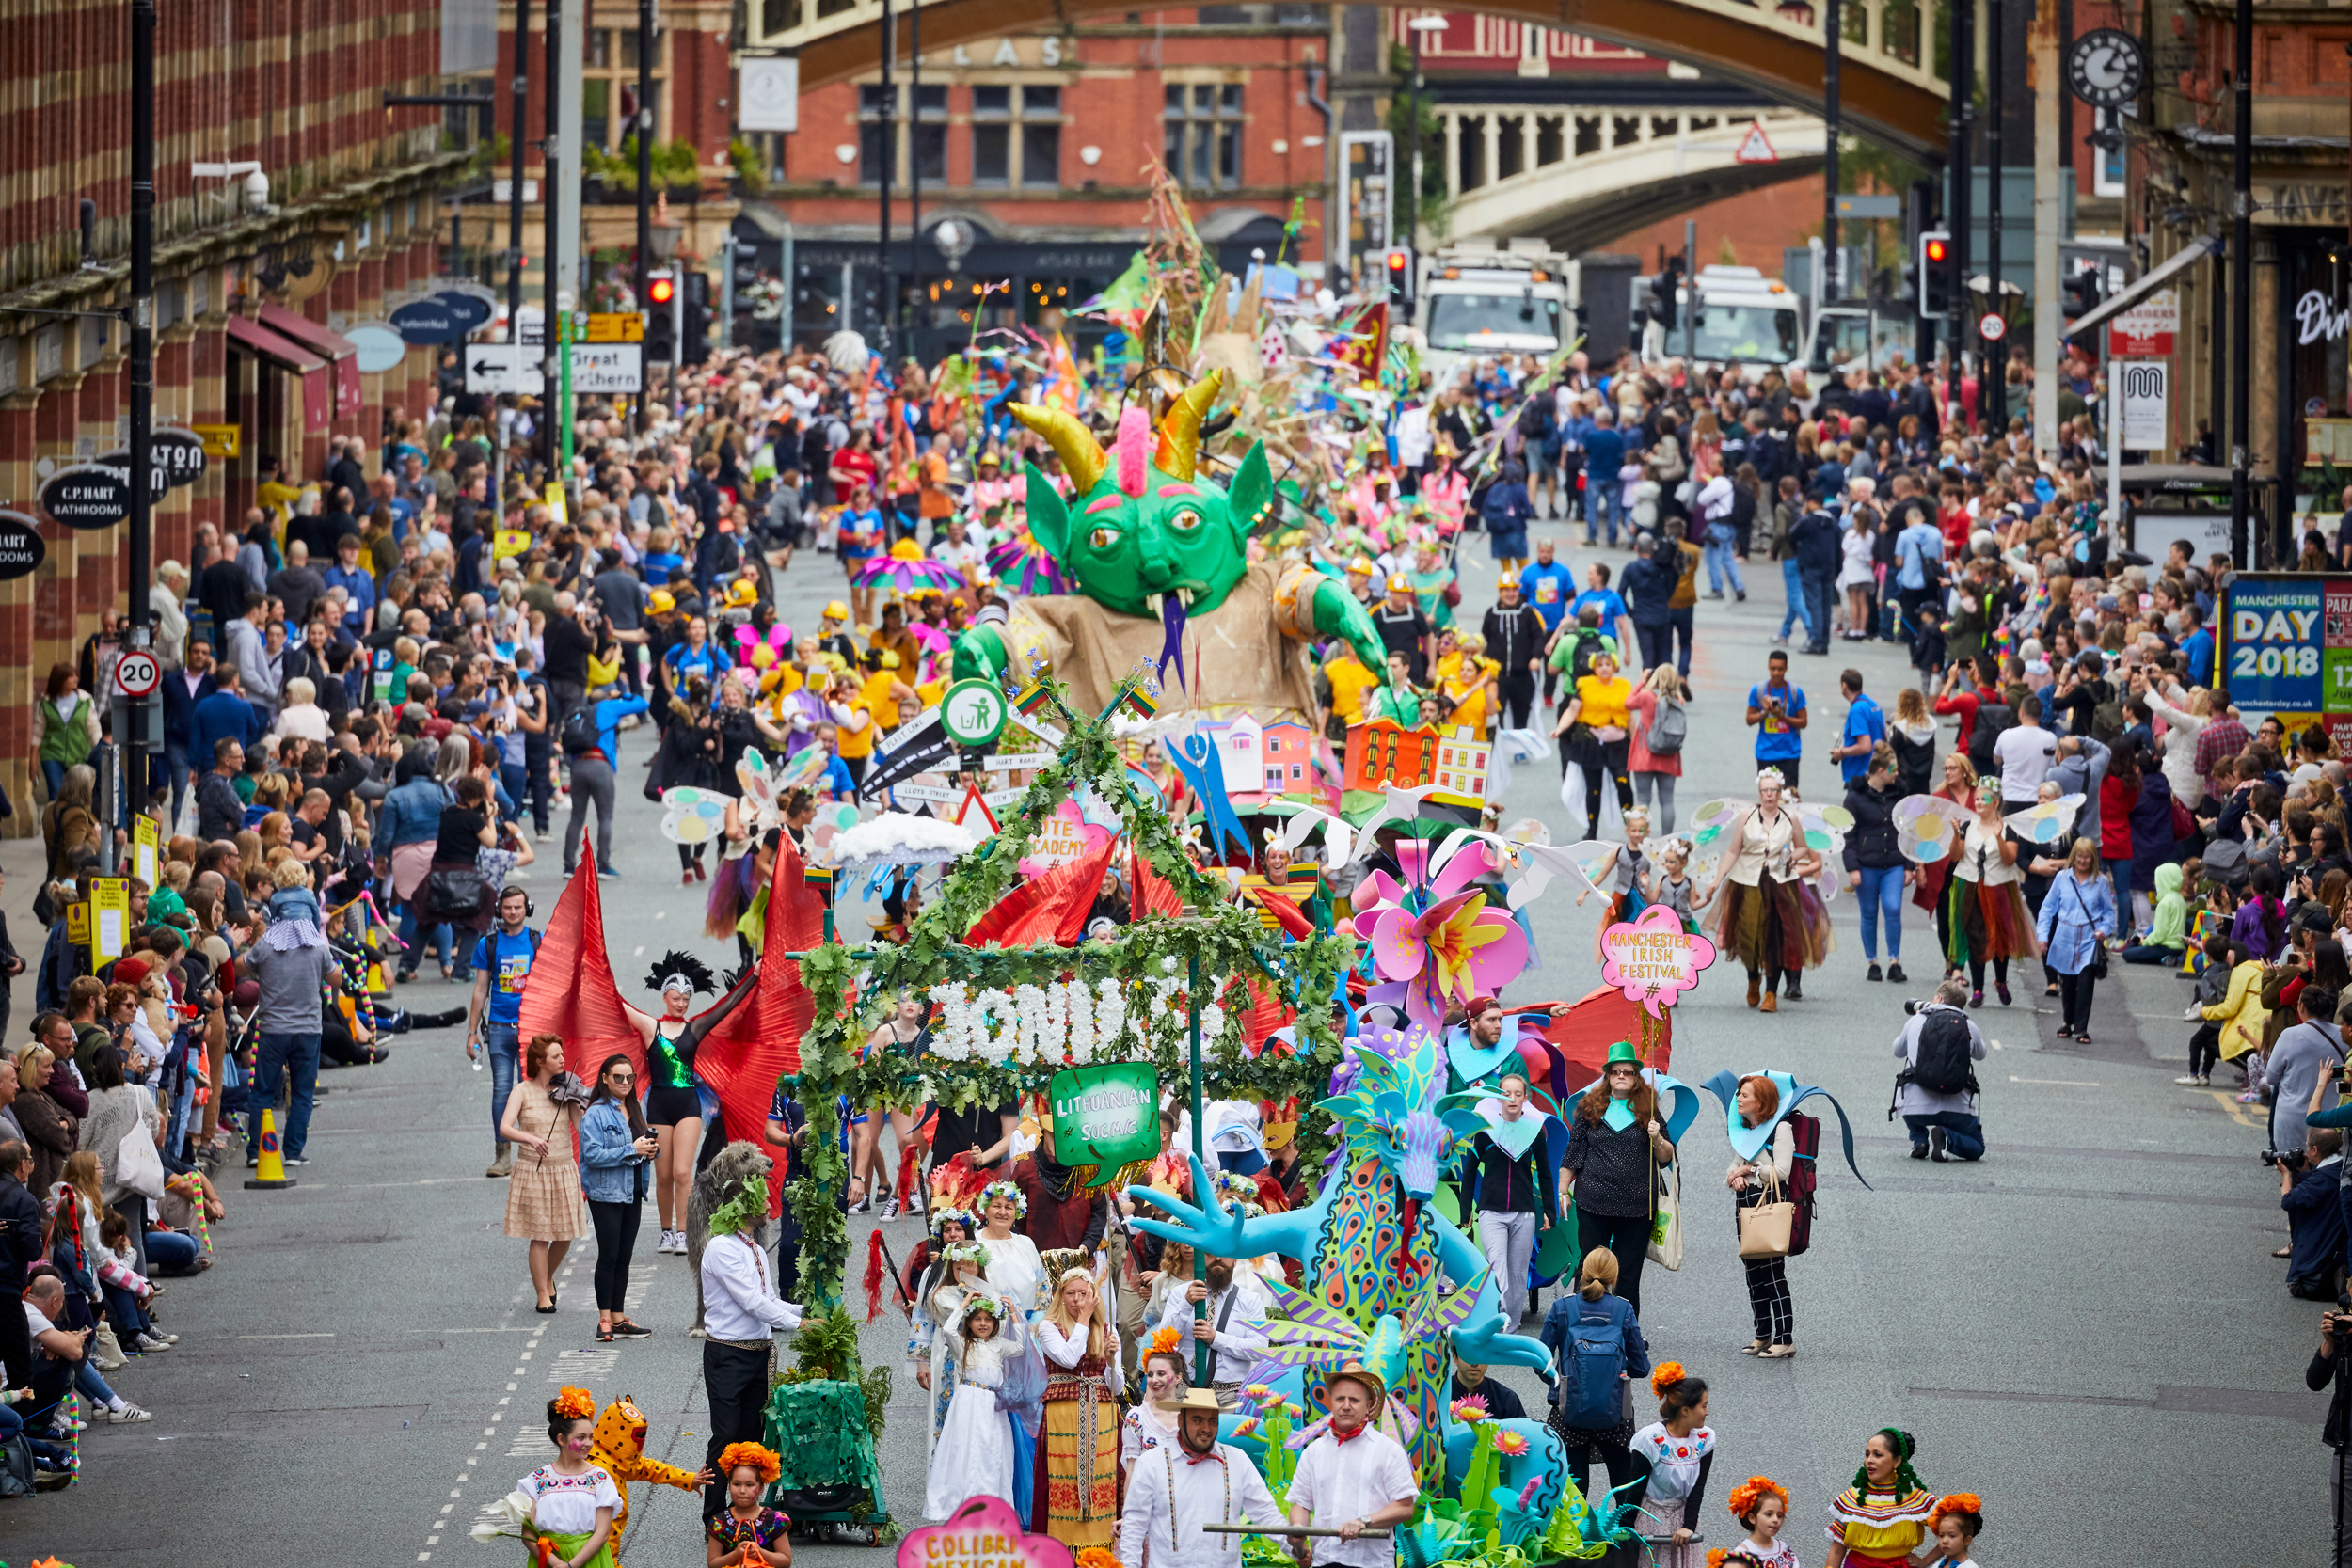 The ninth Manchester Day 2018 parade celebrating the theme: Word on the Street!